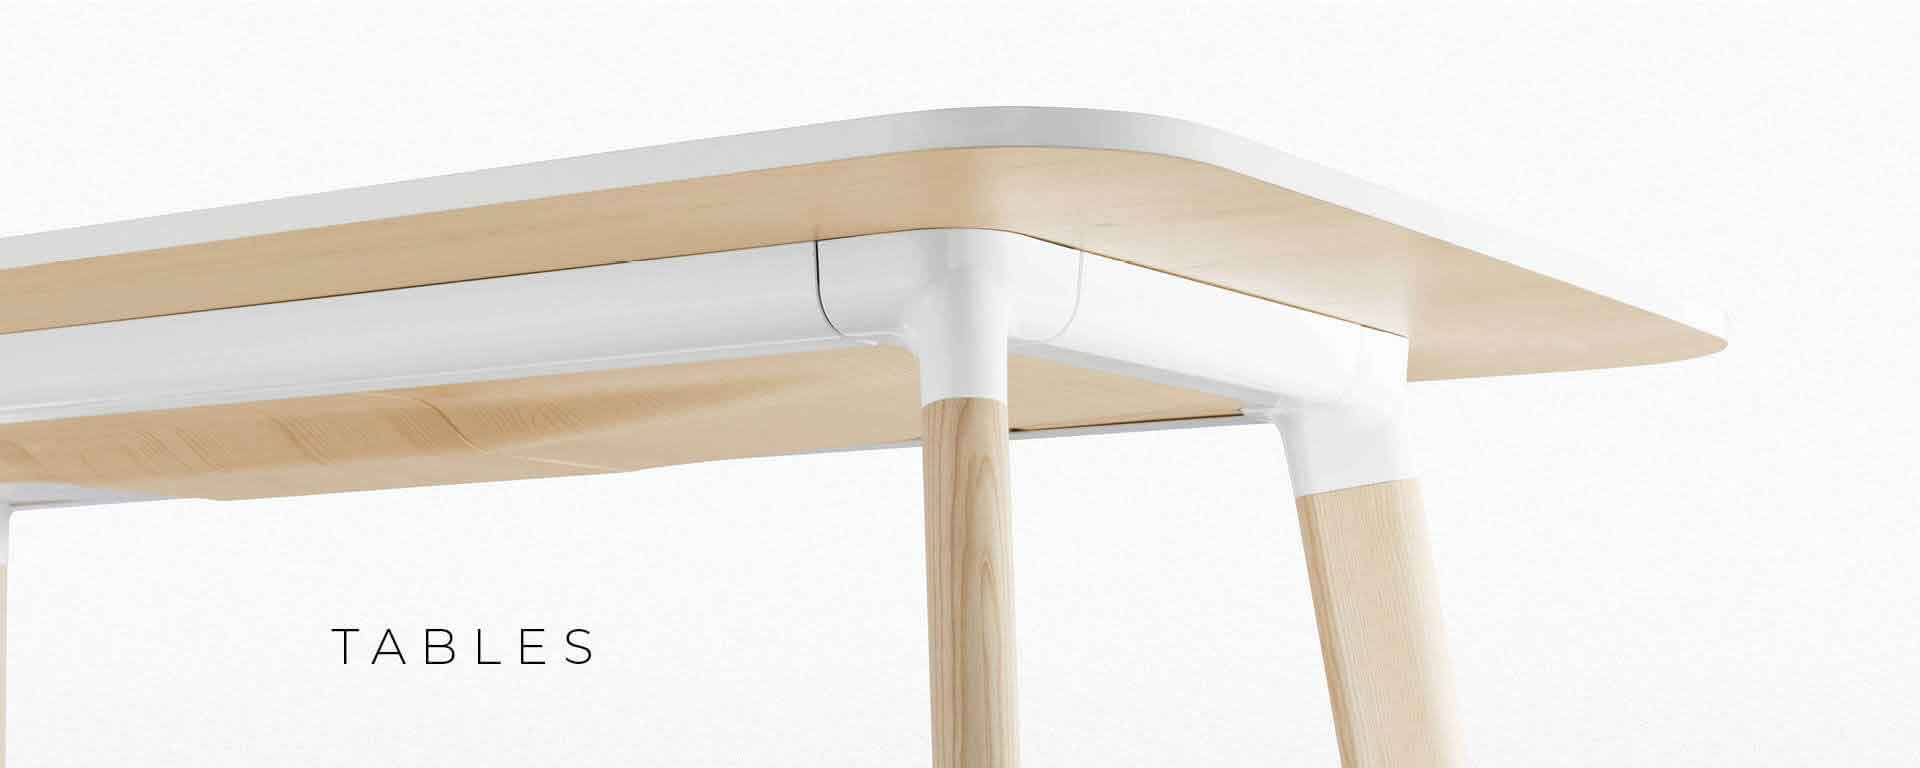 infinity office furniture table slider